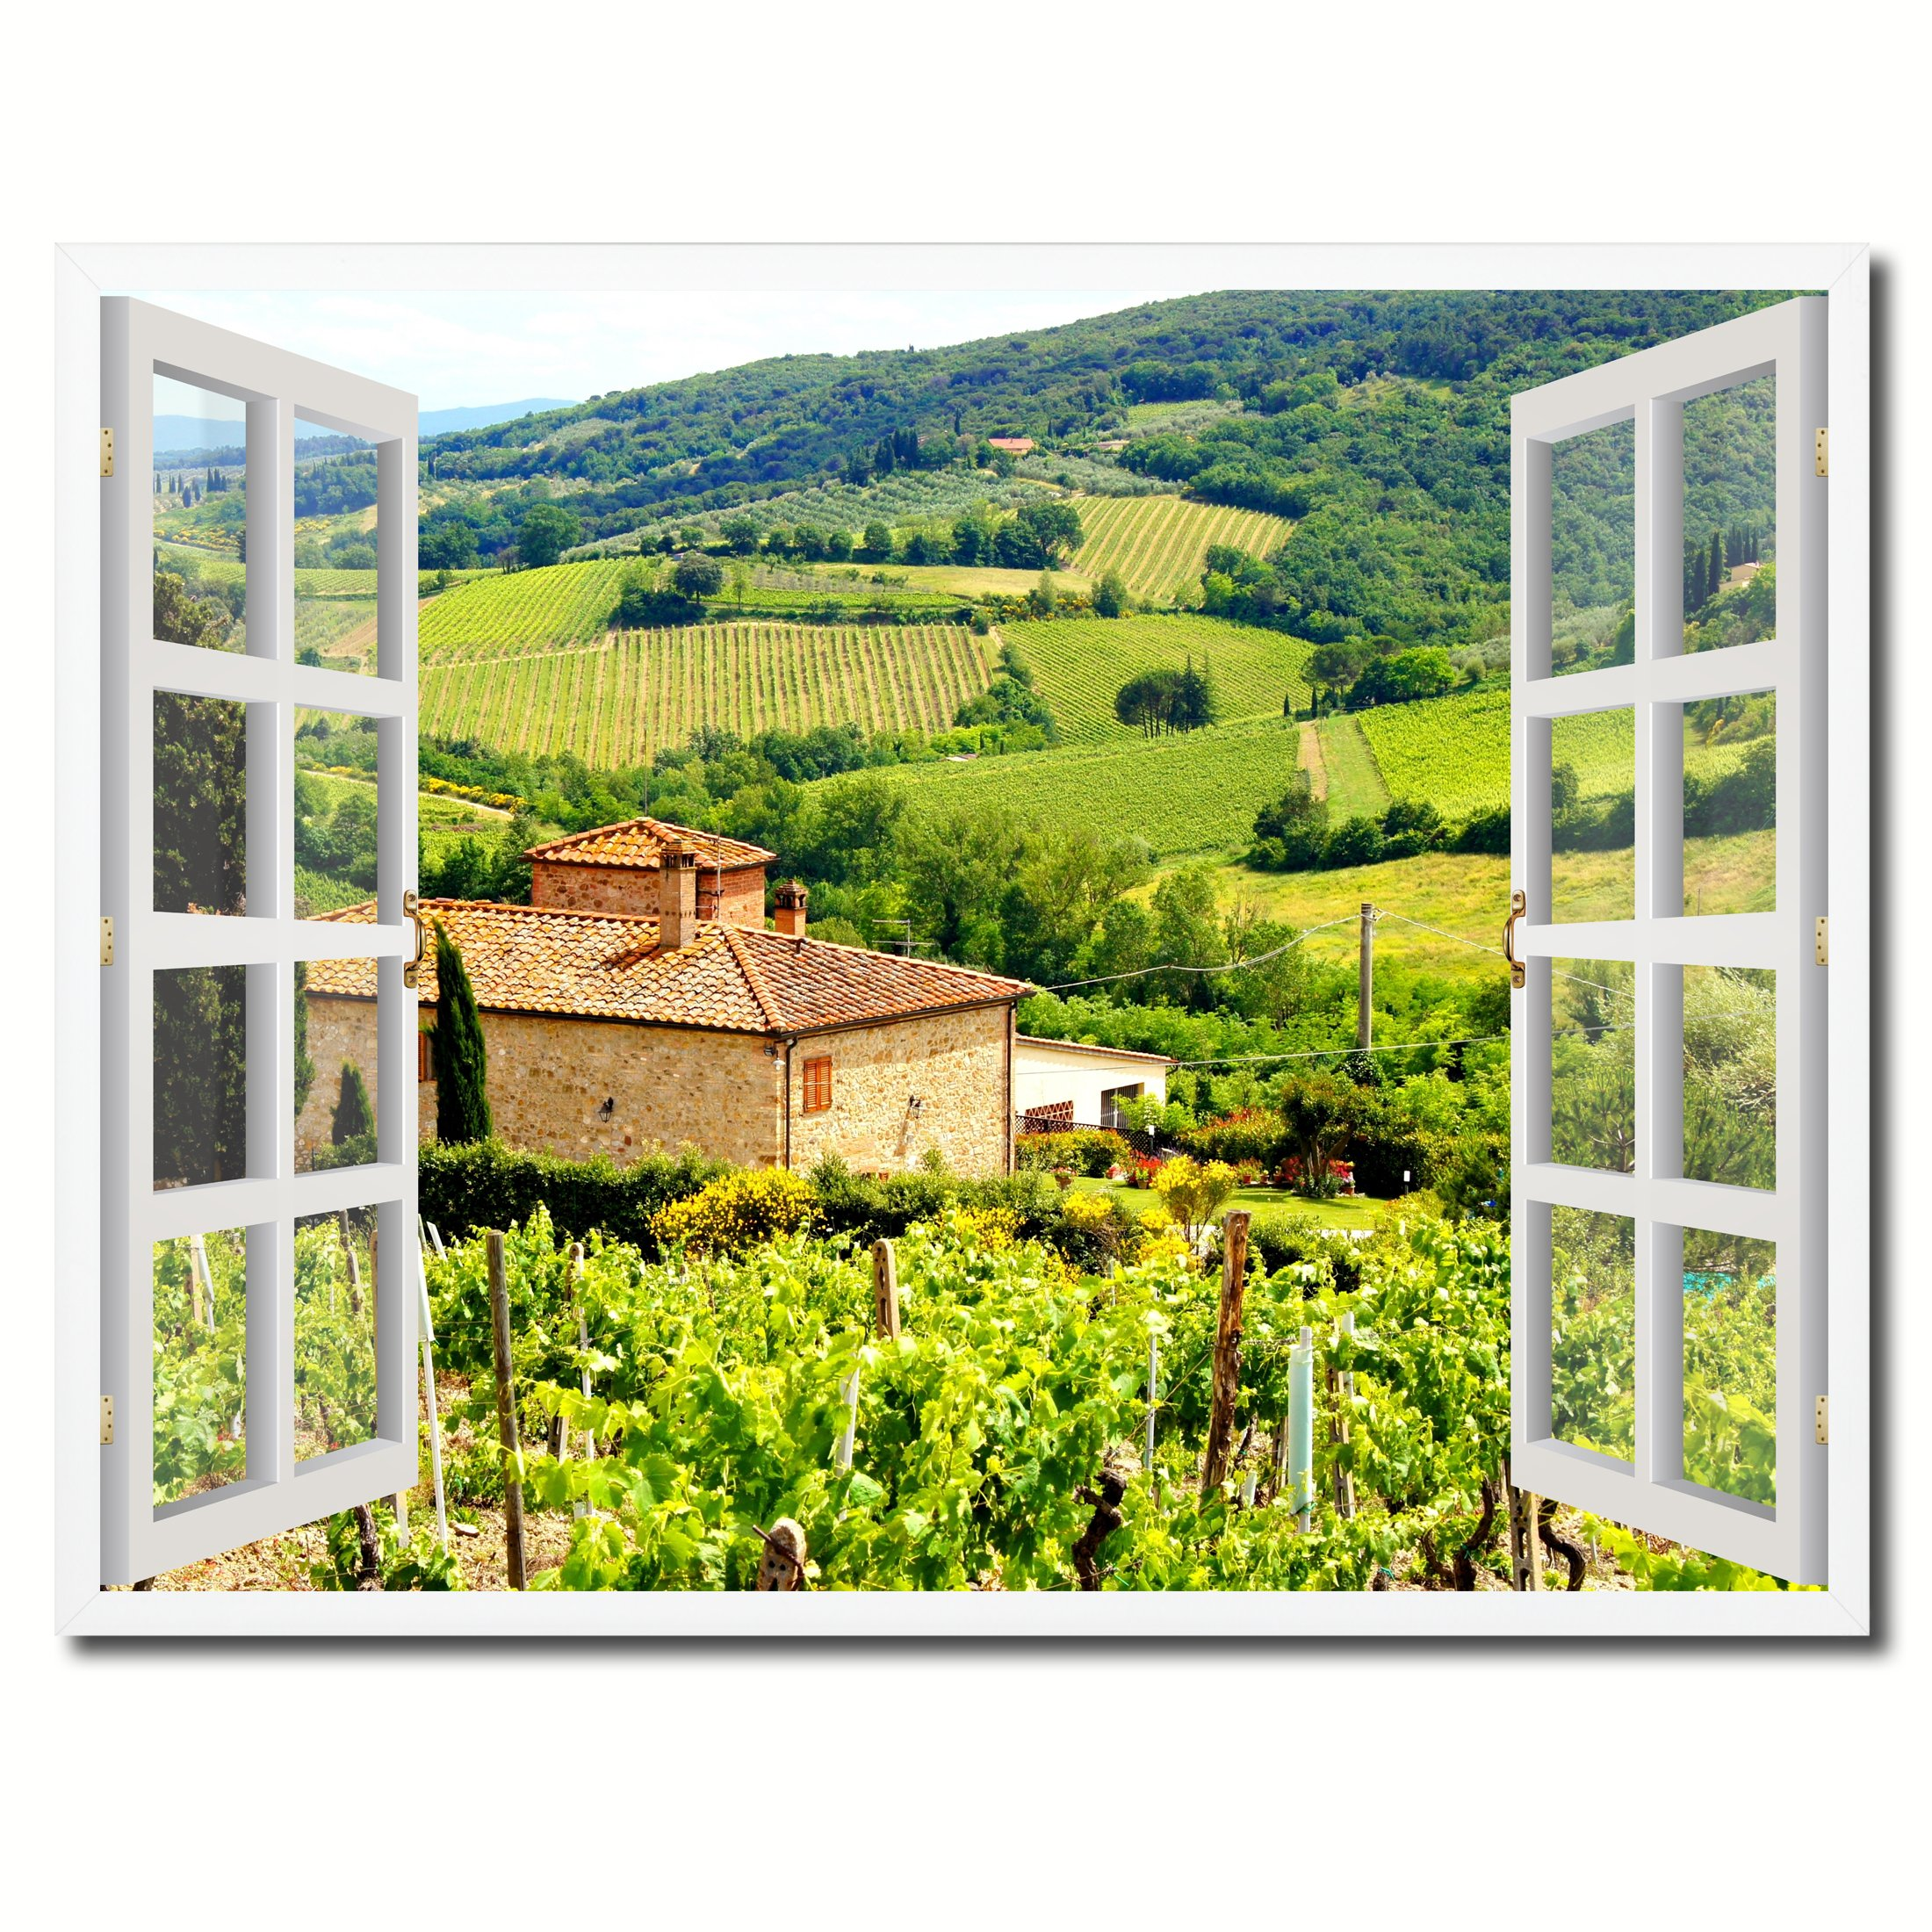 SpotColorArt FRENCHWINDOWH-23035W2229 Handcrafted Framed Canvas Print